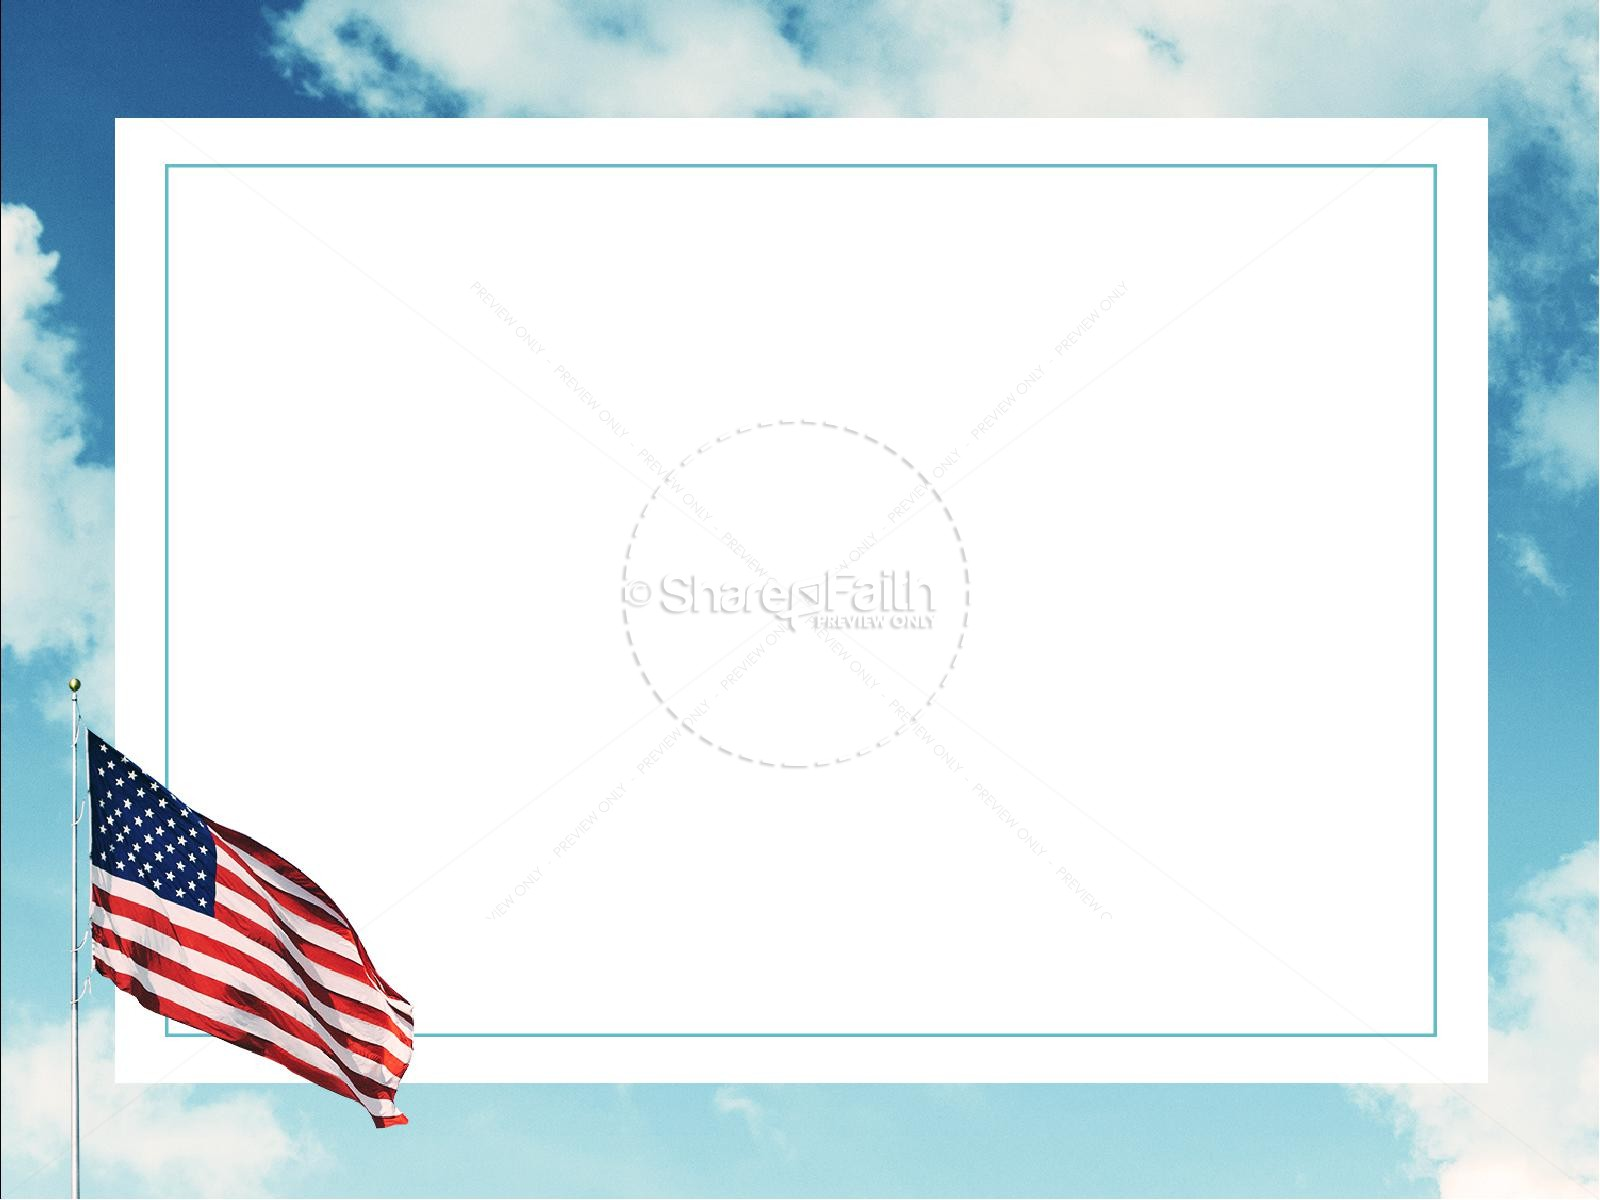 Veterans Day American Flag Graphic